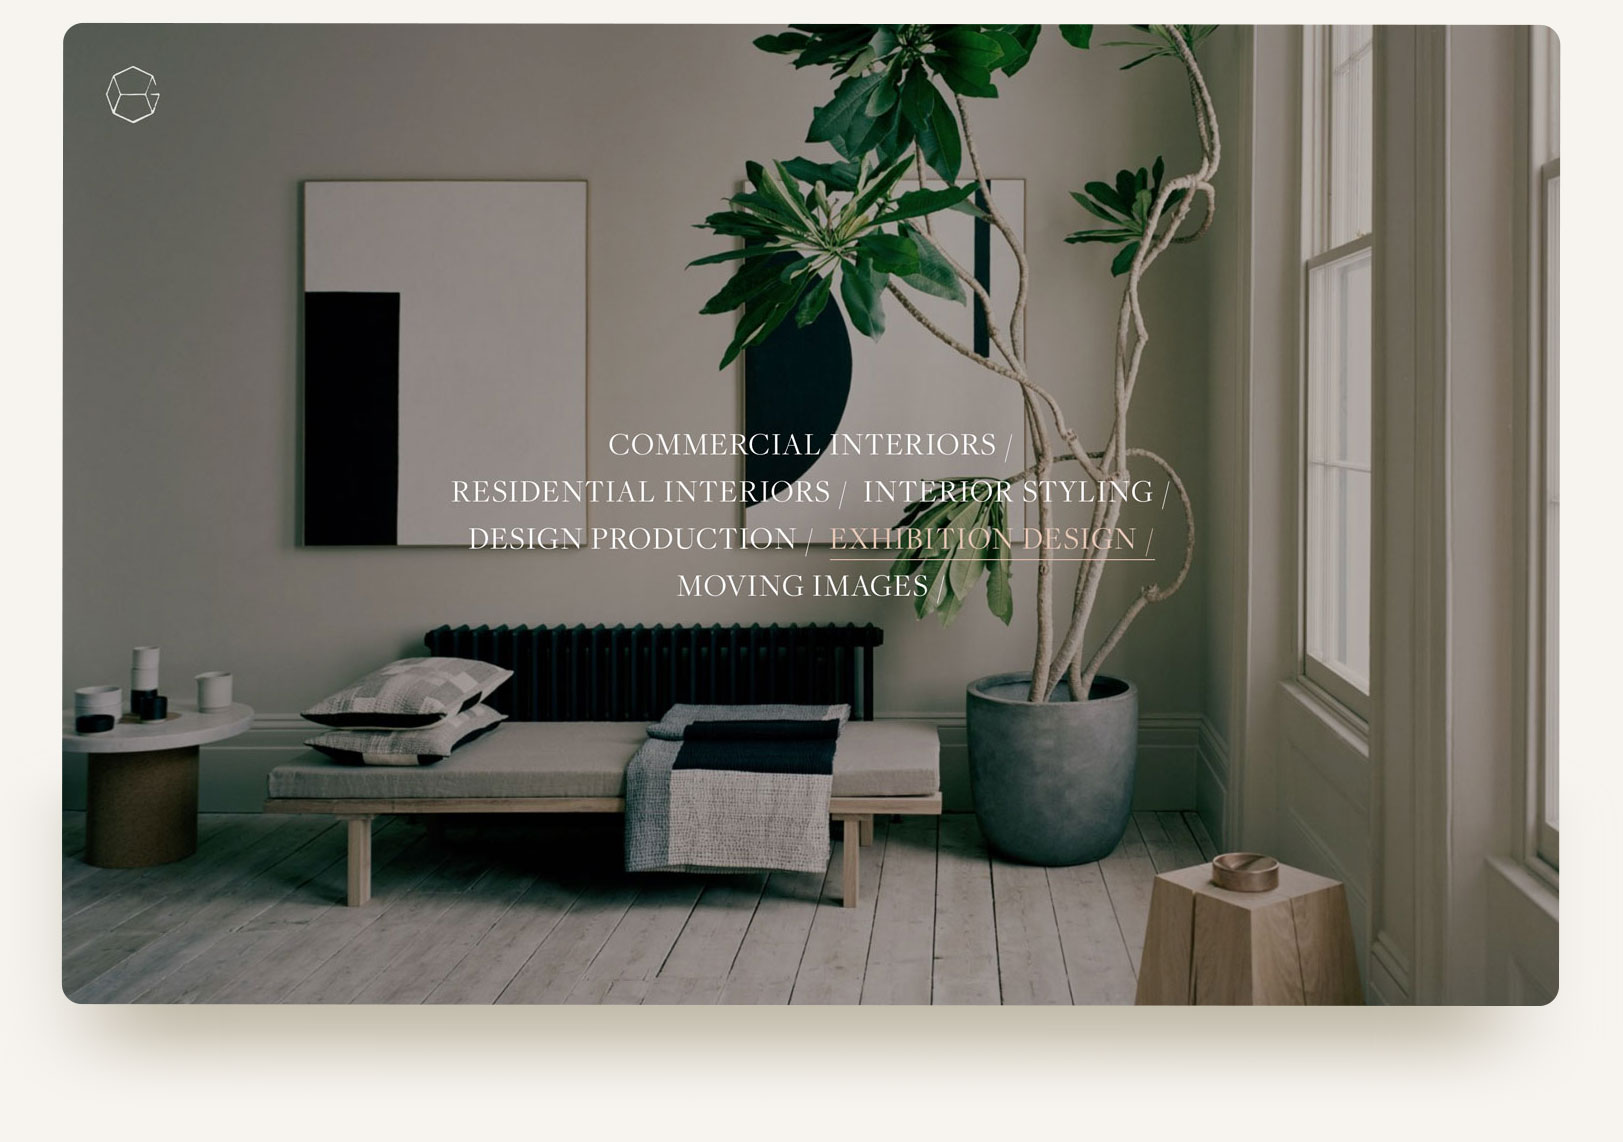 House of Grey interior exhibition design studio portfolio homepage gallery carousel with typography rollover and video. Squarespace website design and custom code by Brittany Hurdle beckon webeckon